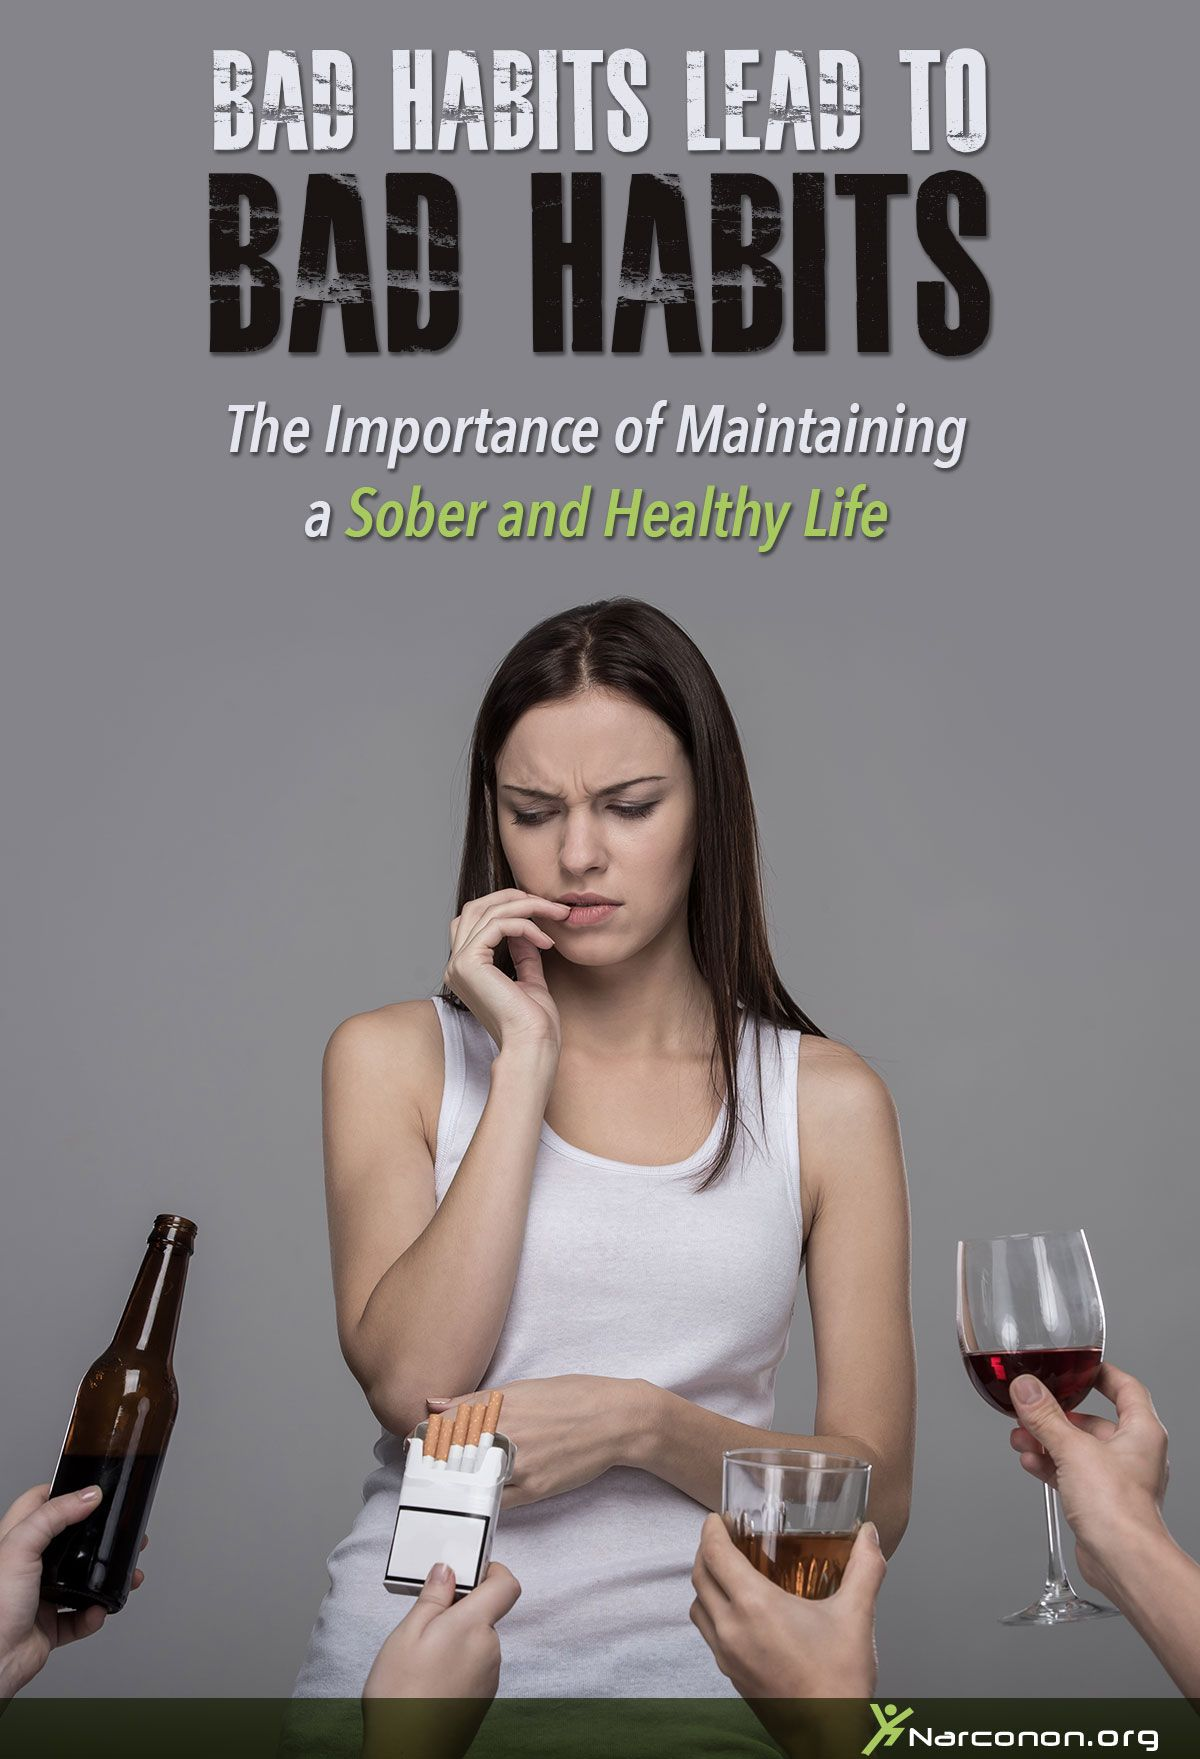 Bad Habits Lead to Bad Habits—The Importance of